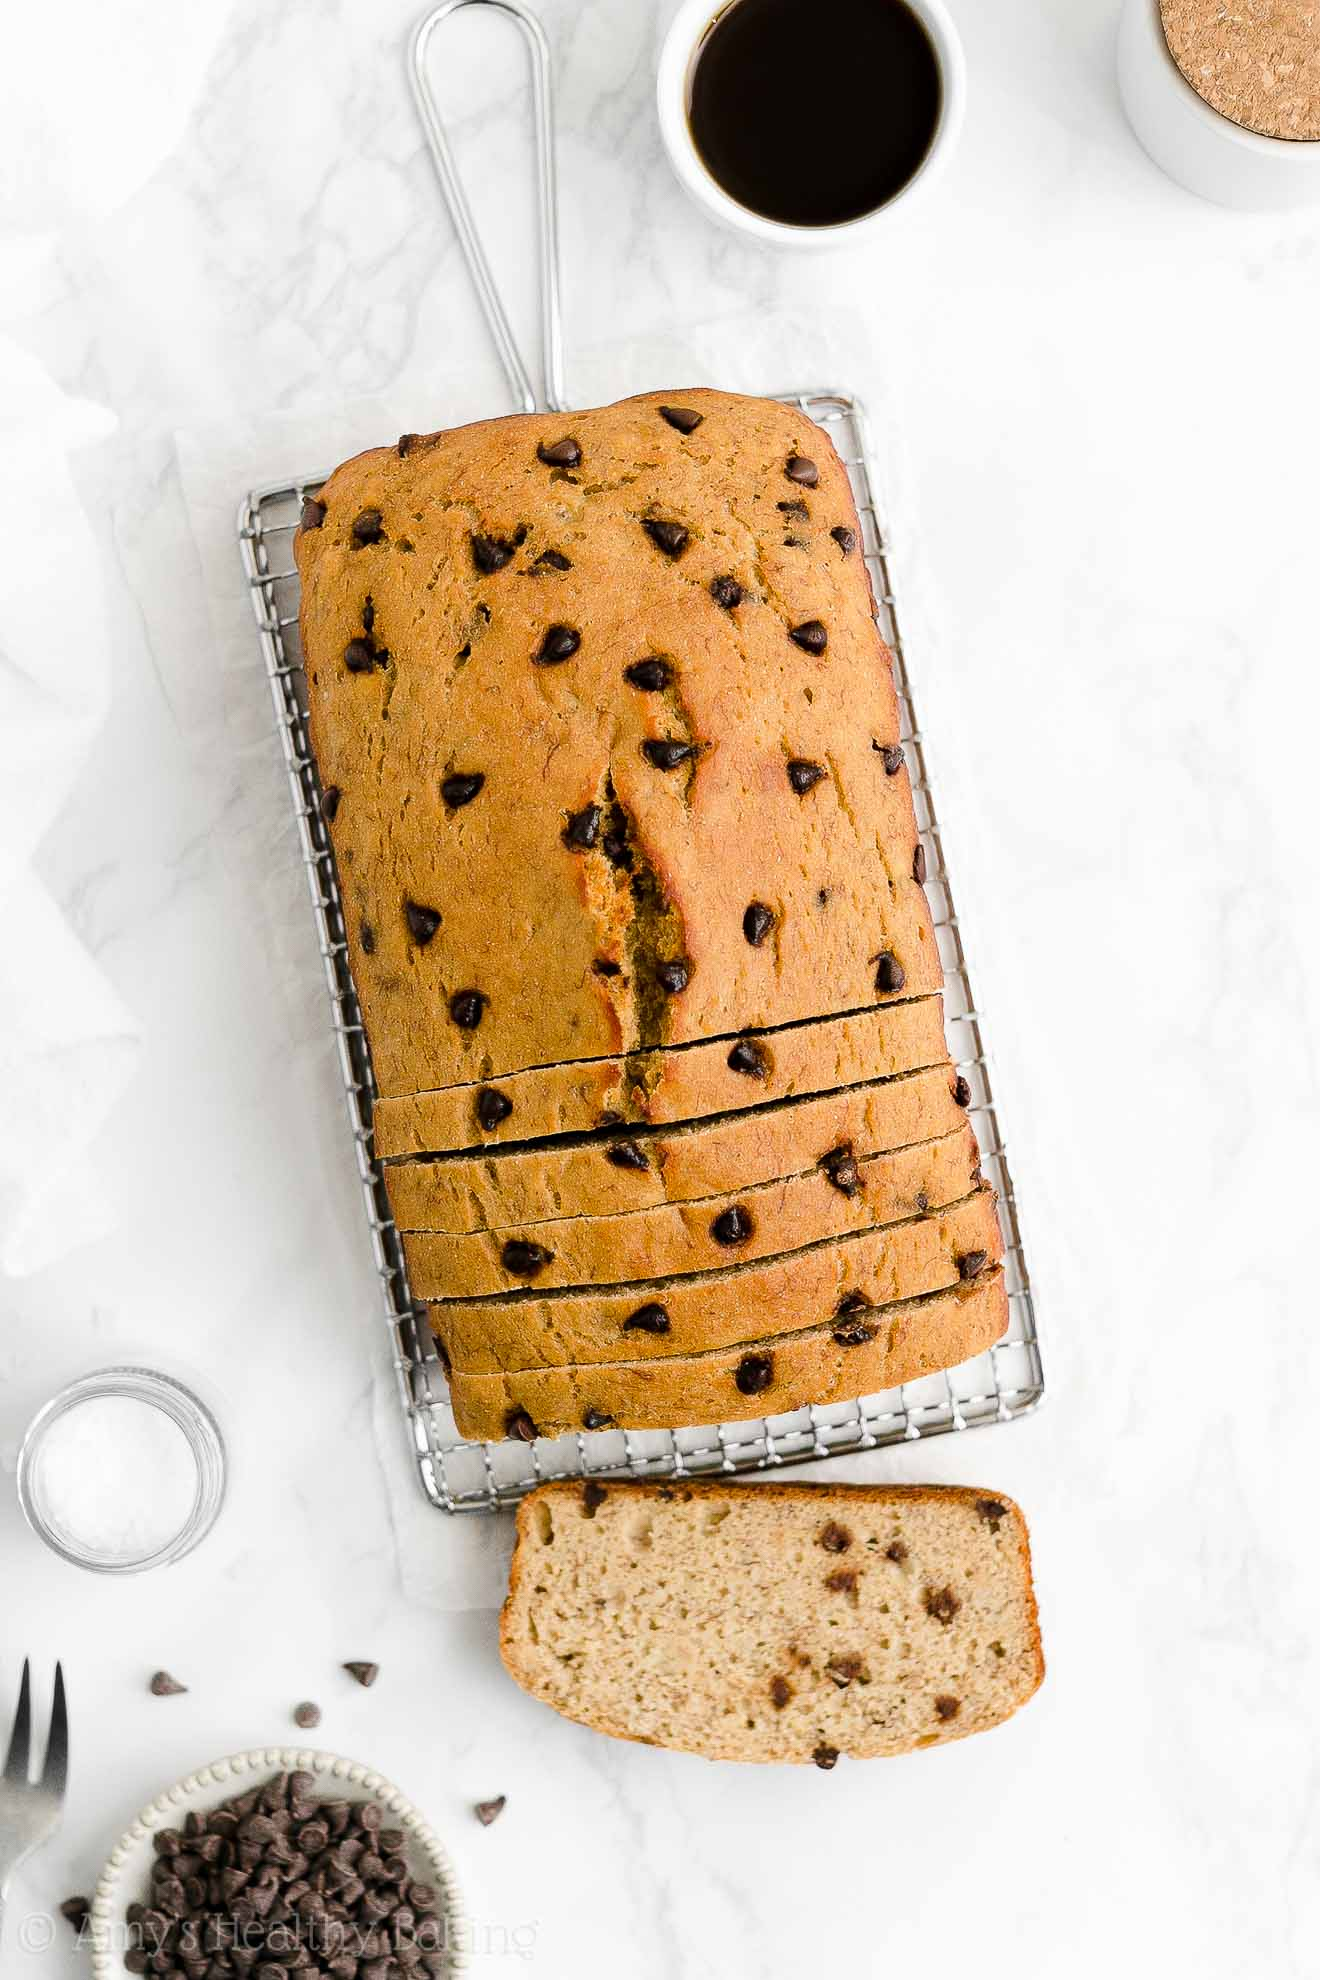 Best Easy Healthy Weight Watchers One-Bowl Chocolate Chip Banana Bread